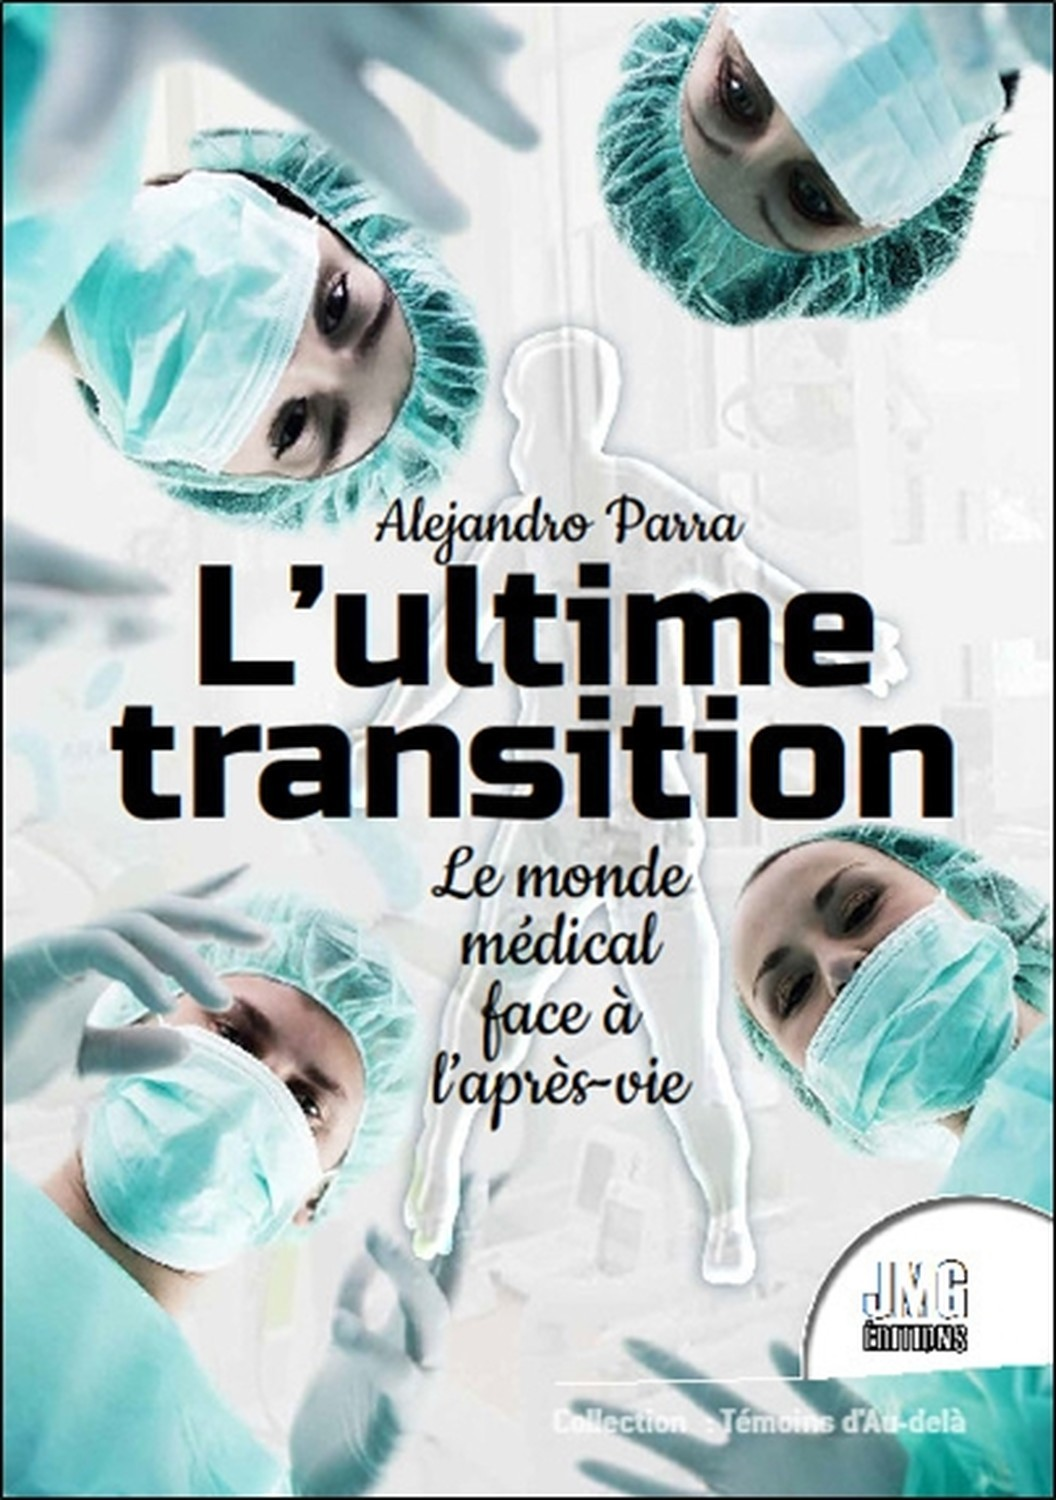 L'ULTIME TRANSITION - LE MONDE MEDICAL FACE A L'APRES-VIE